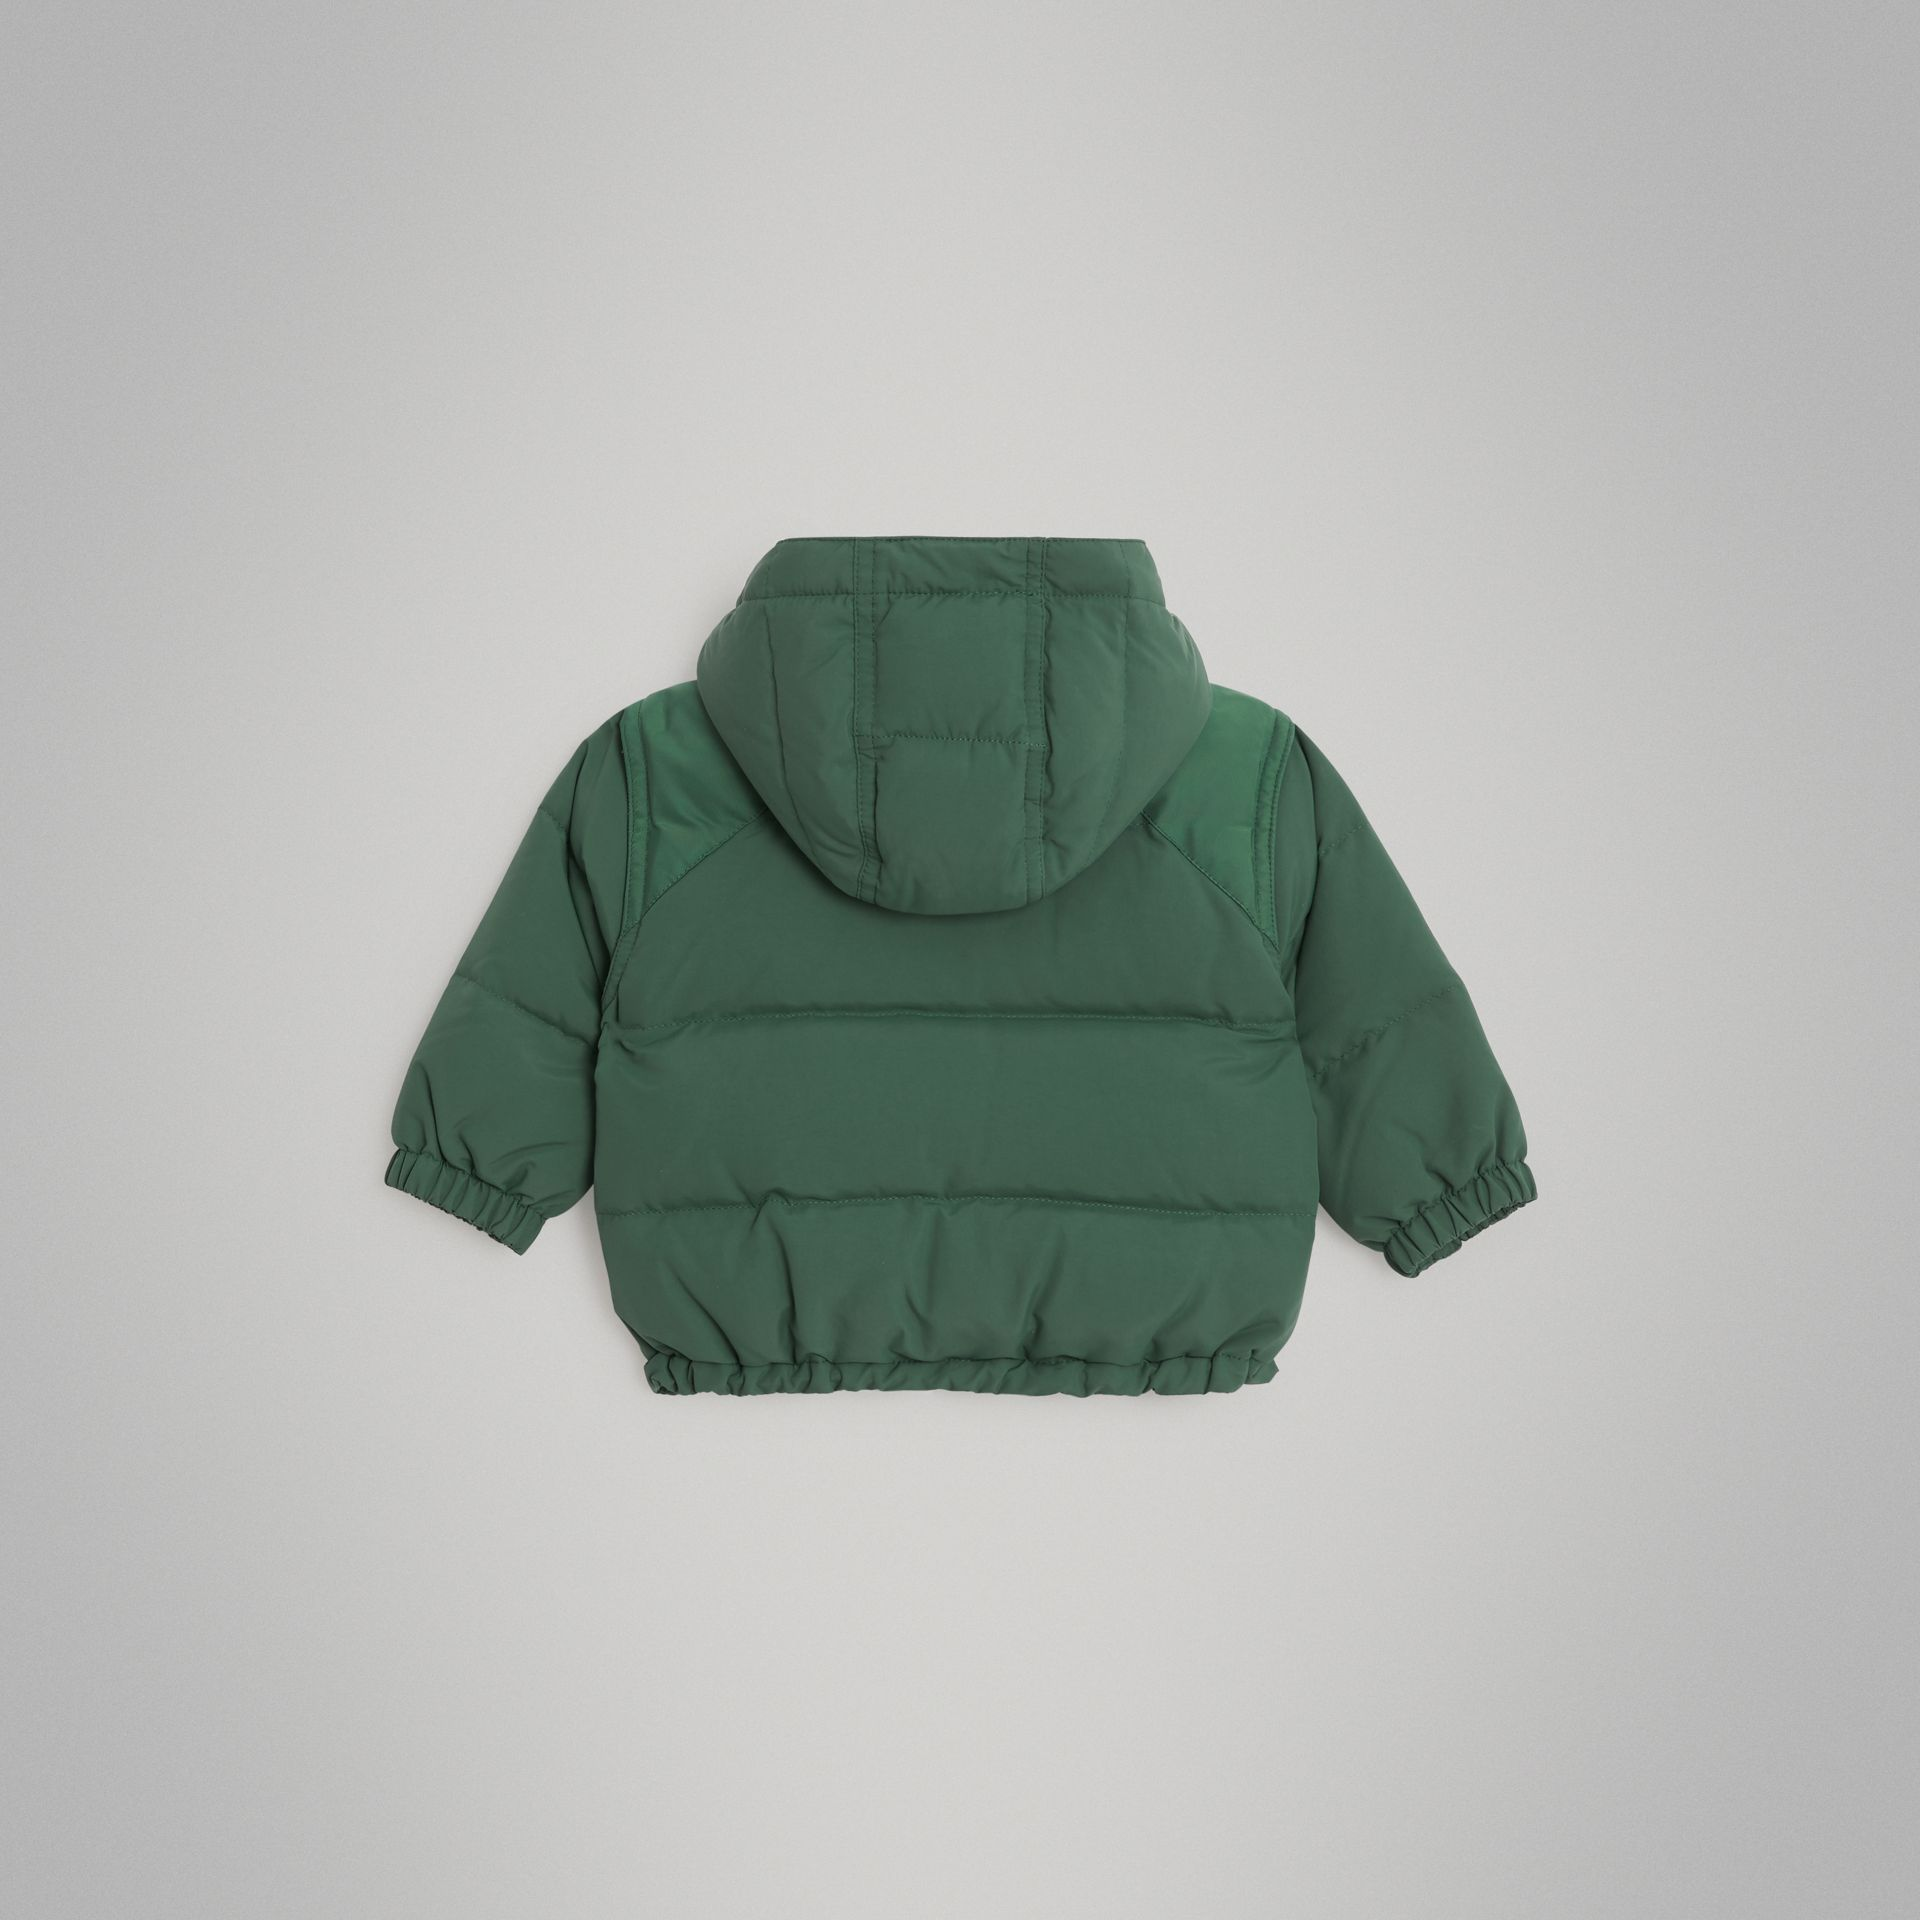 Down-filled Hooded Puffer Jacket in Veridian Green - Children | Burberry United Kingdom - gallery image 3